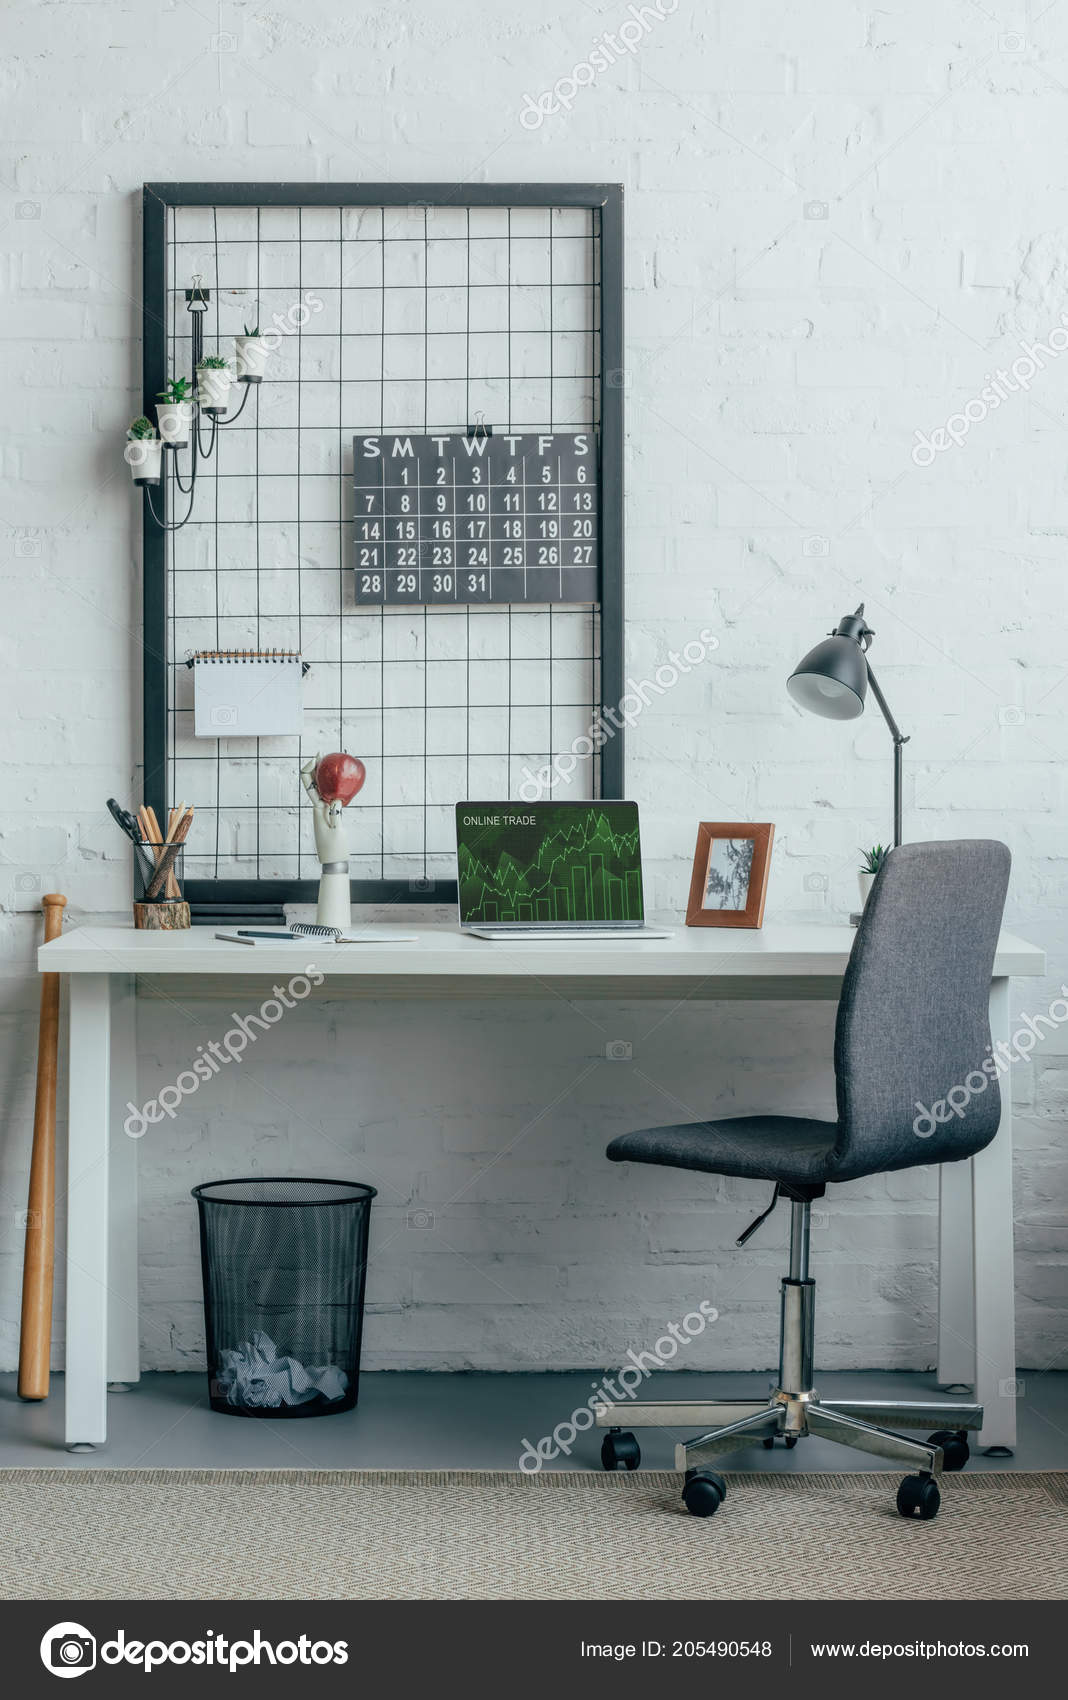 Laptop Loaded Online Trade Page Table Modern Office Stock Photo